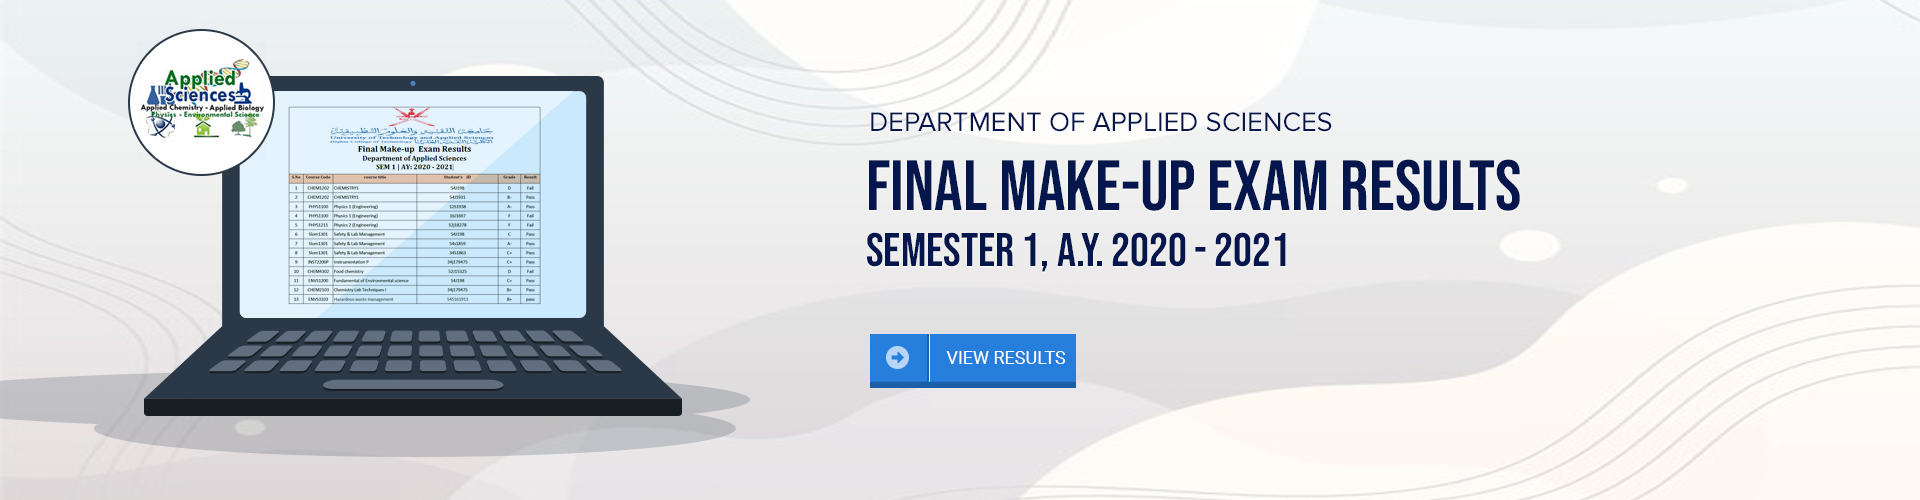 Applied Sciences Department - Final Make-up Exam Results. Semester 1 AY 2020-2021